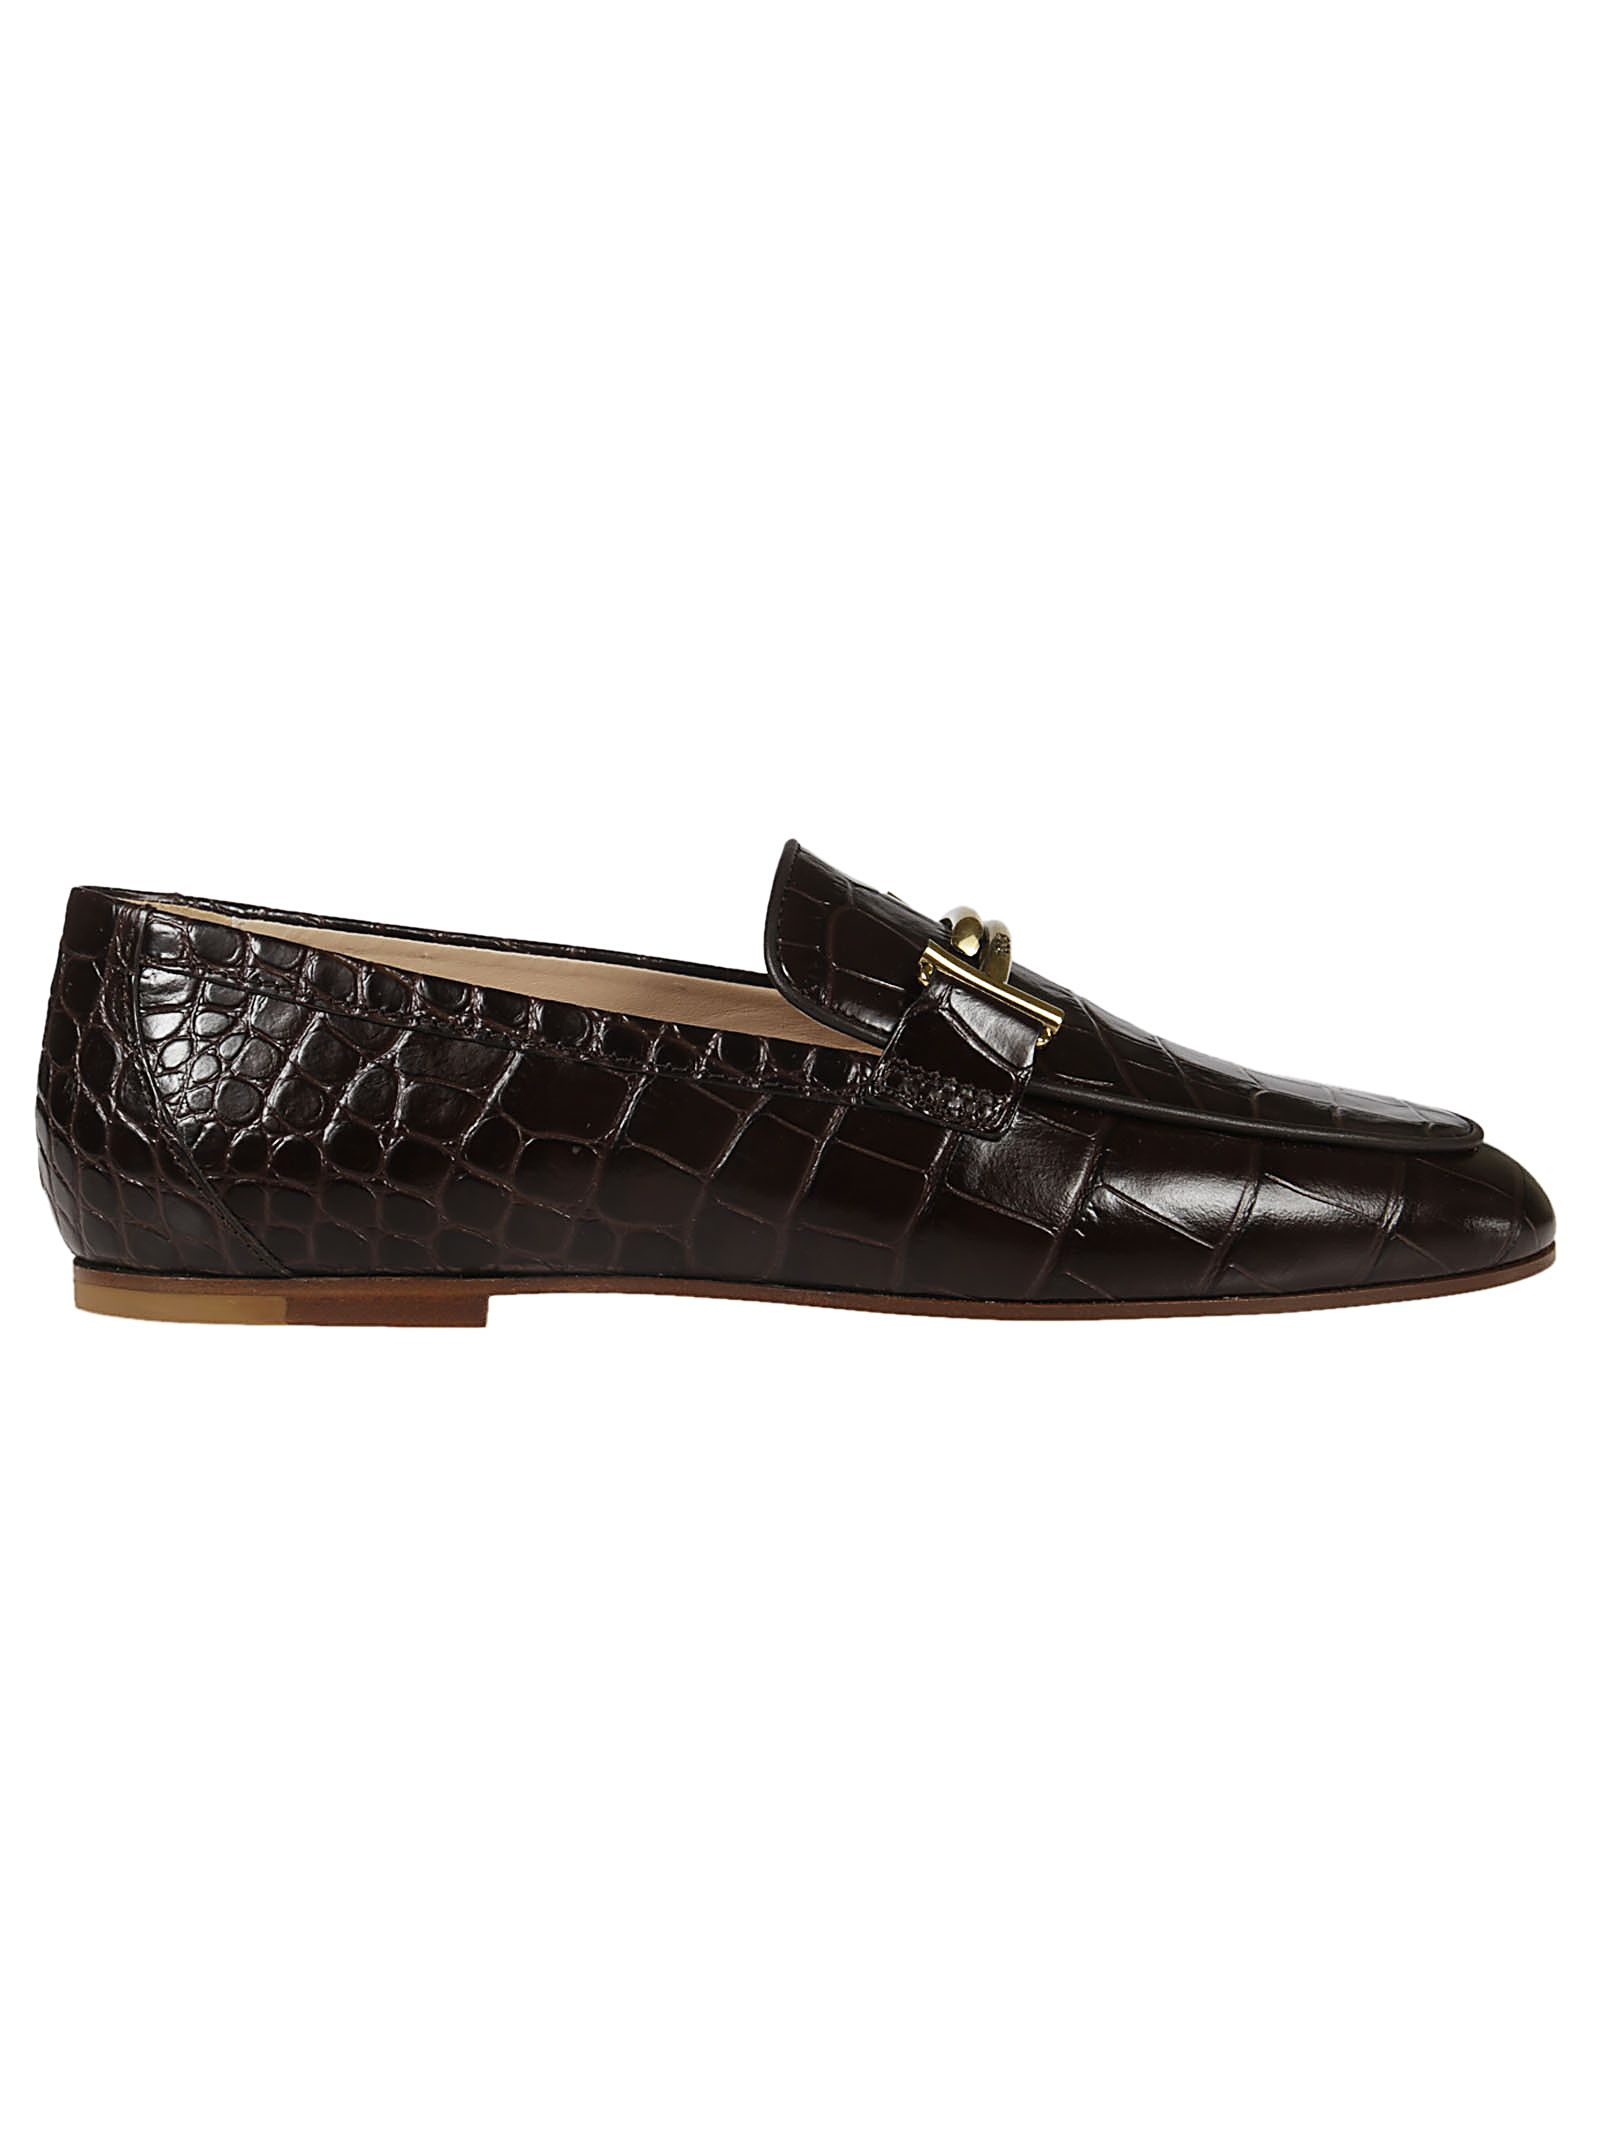 CROC-EFFECT LOAFERS